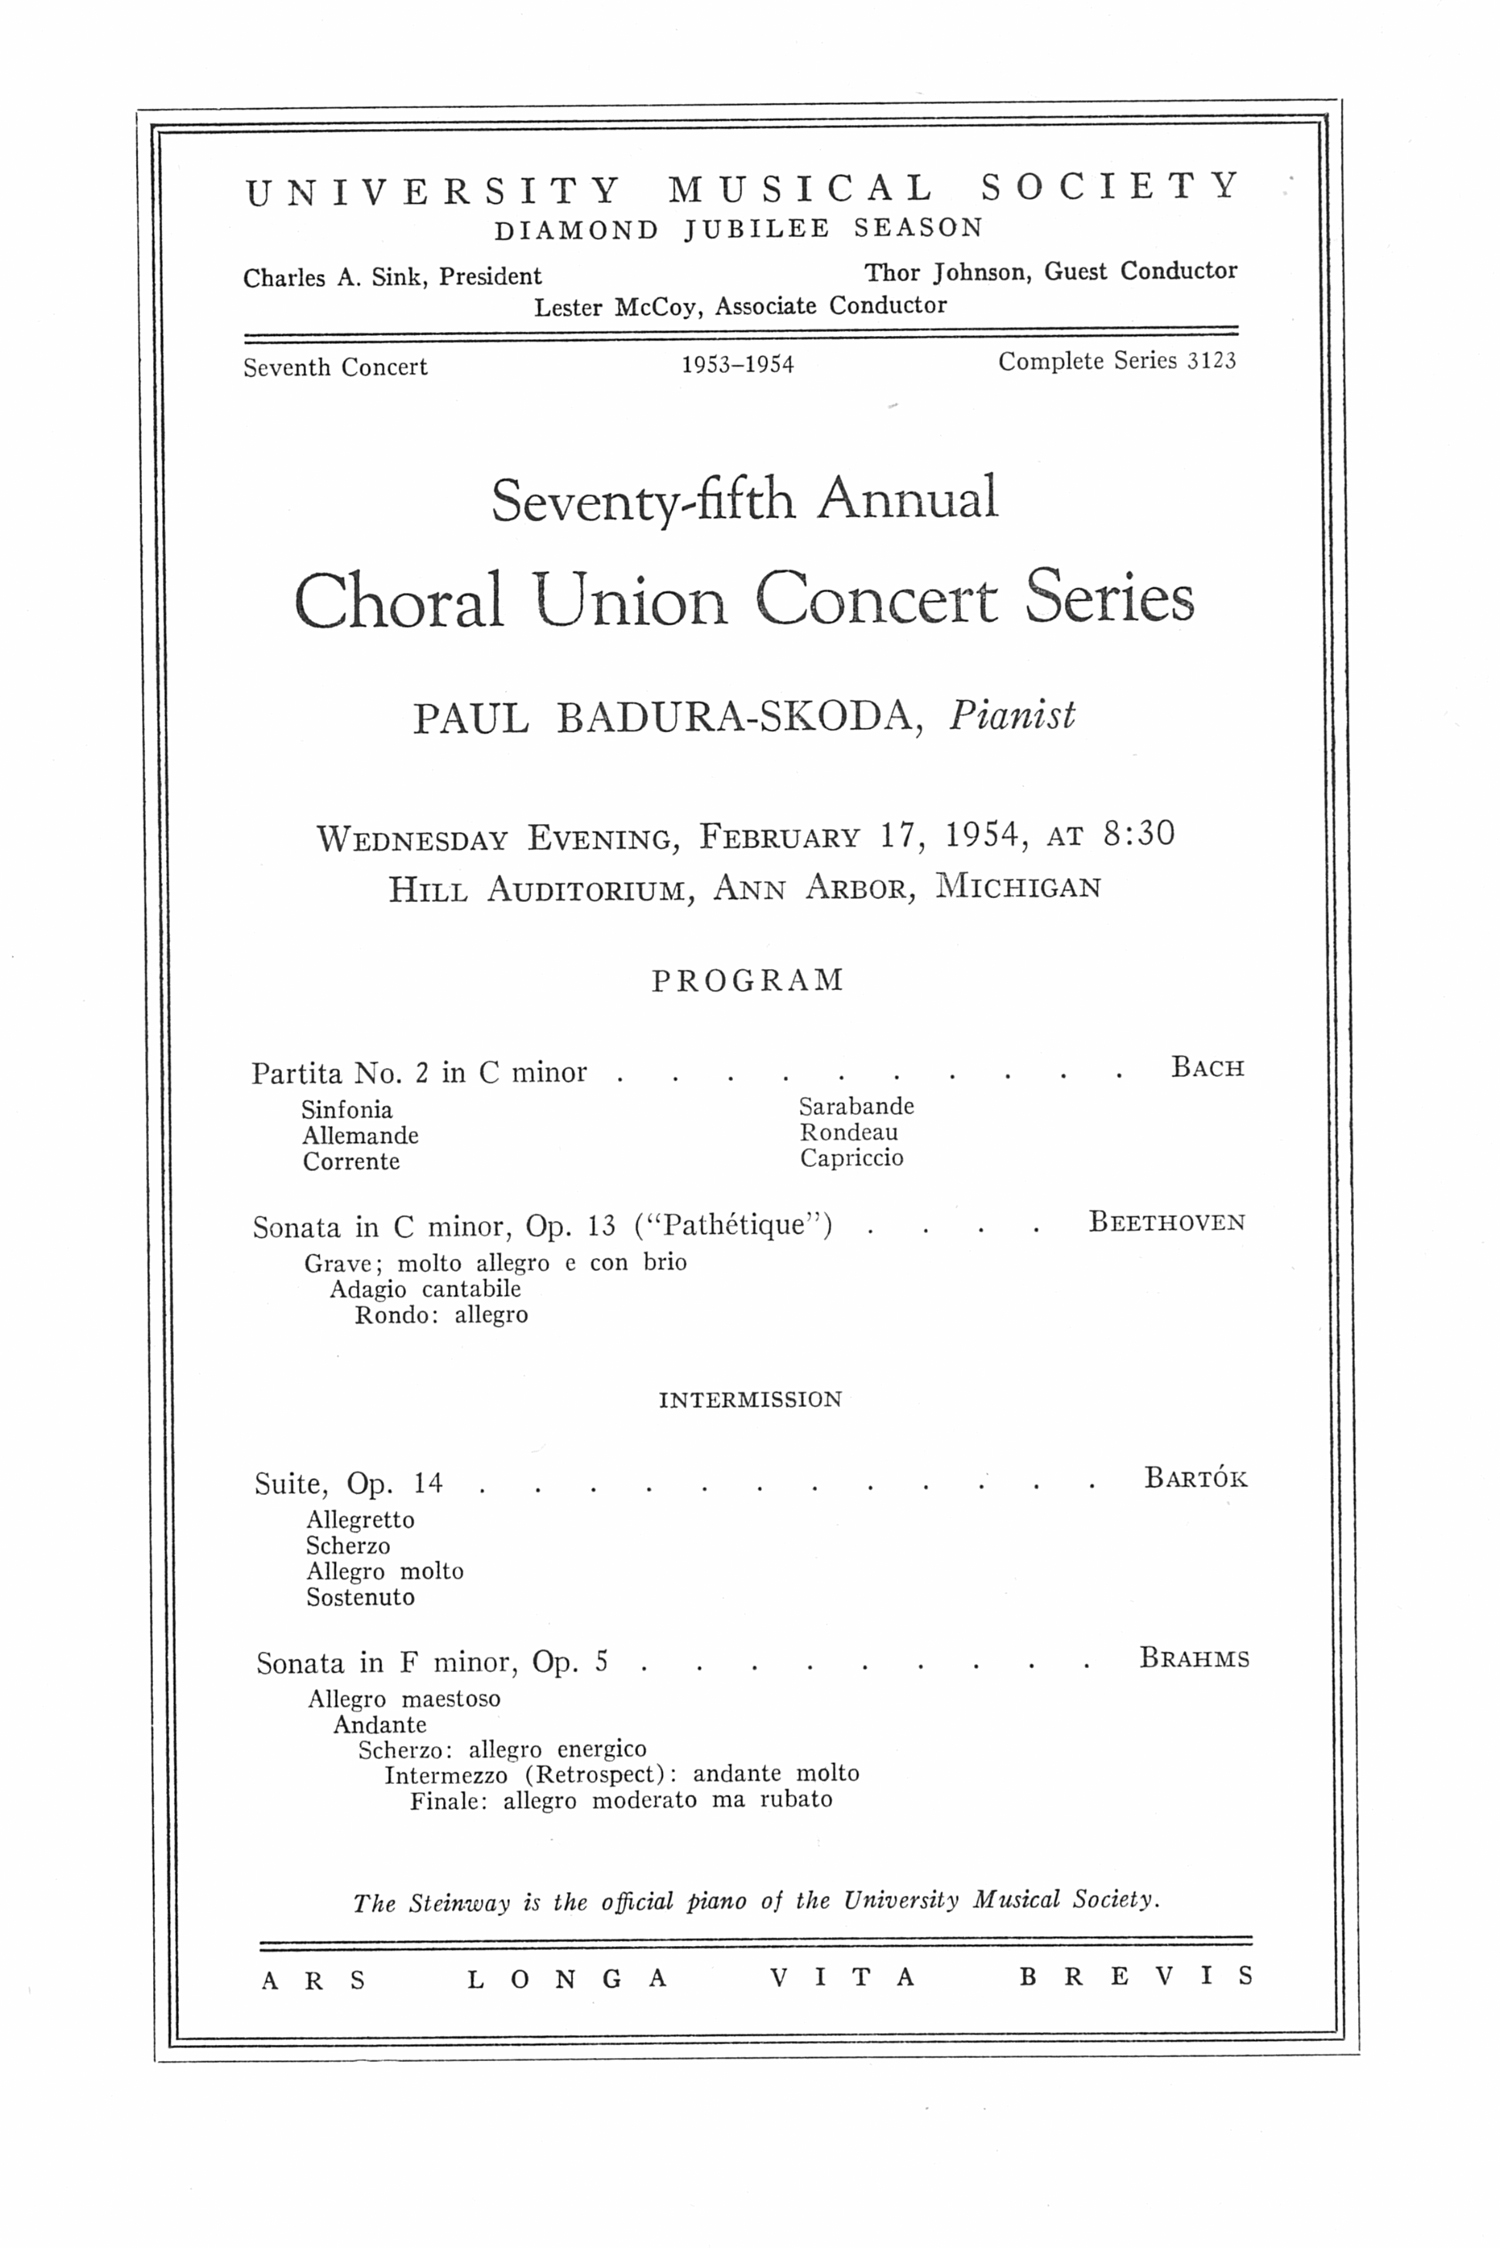 UMS Concert Program, February 17, 1954: Seventy-fifth Annual Choral Union Concert Series -- Paul Baduraskoda image